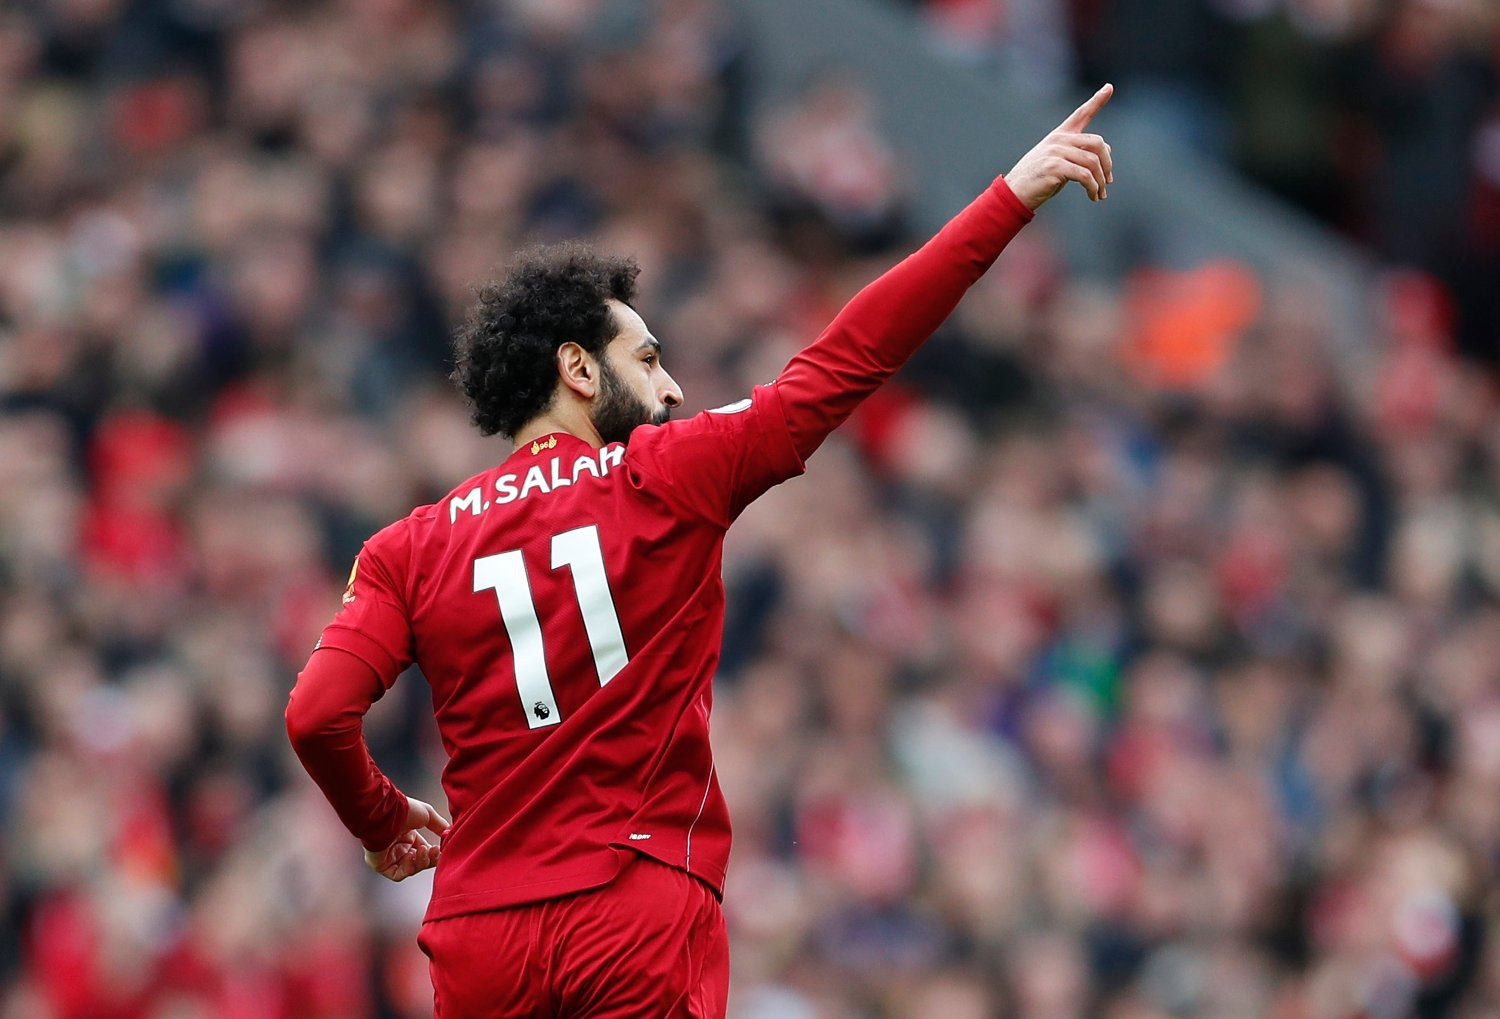 Mohamed Salah of Liverpool celebrates scoring the equaliser during the Premier League match at Anfield, Liverpool. Picture date: 7th March 2020. Picture credit should read: Darren Staples/Sportimage via PA Images